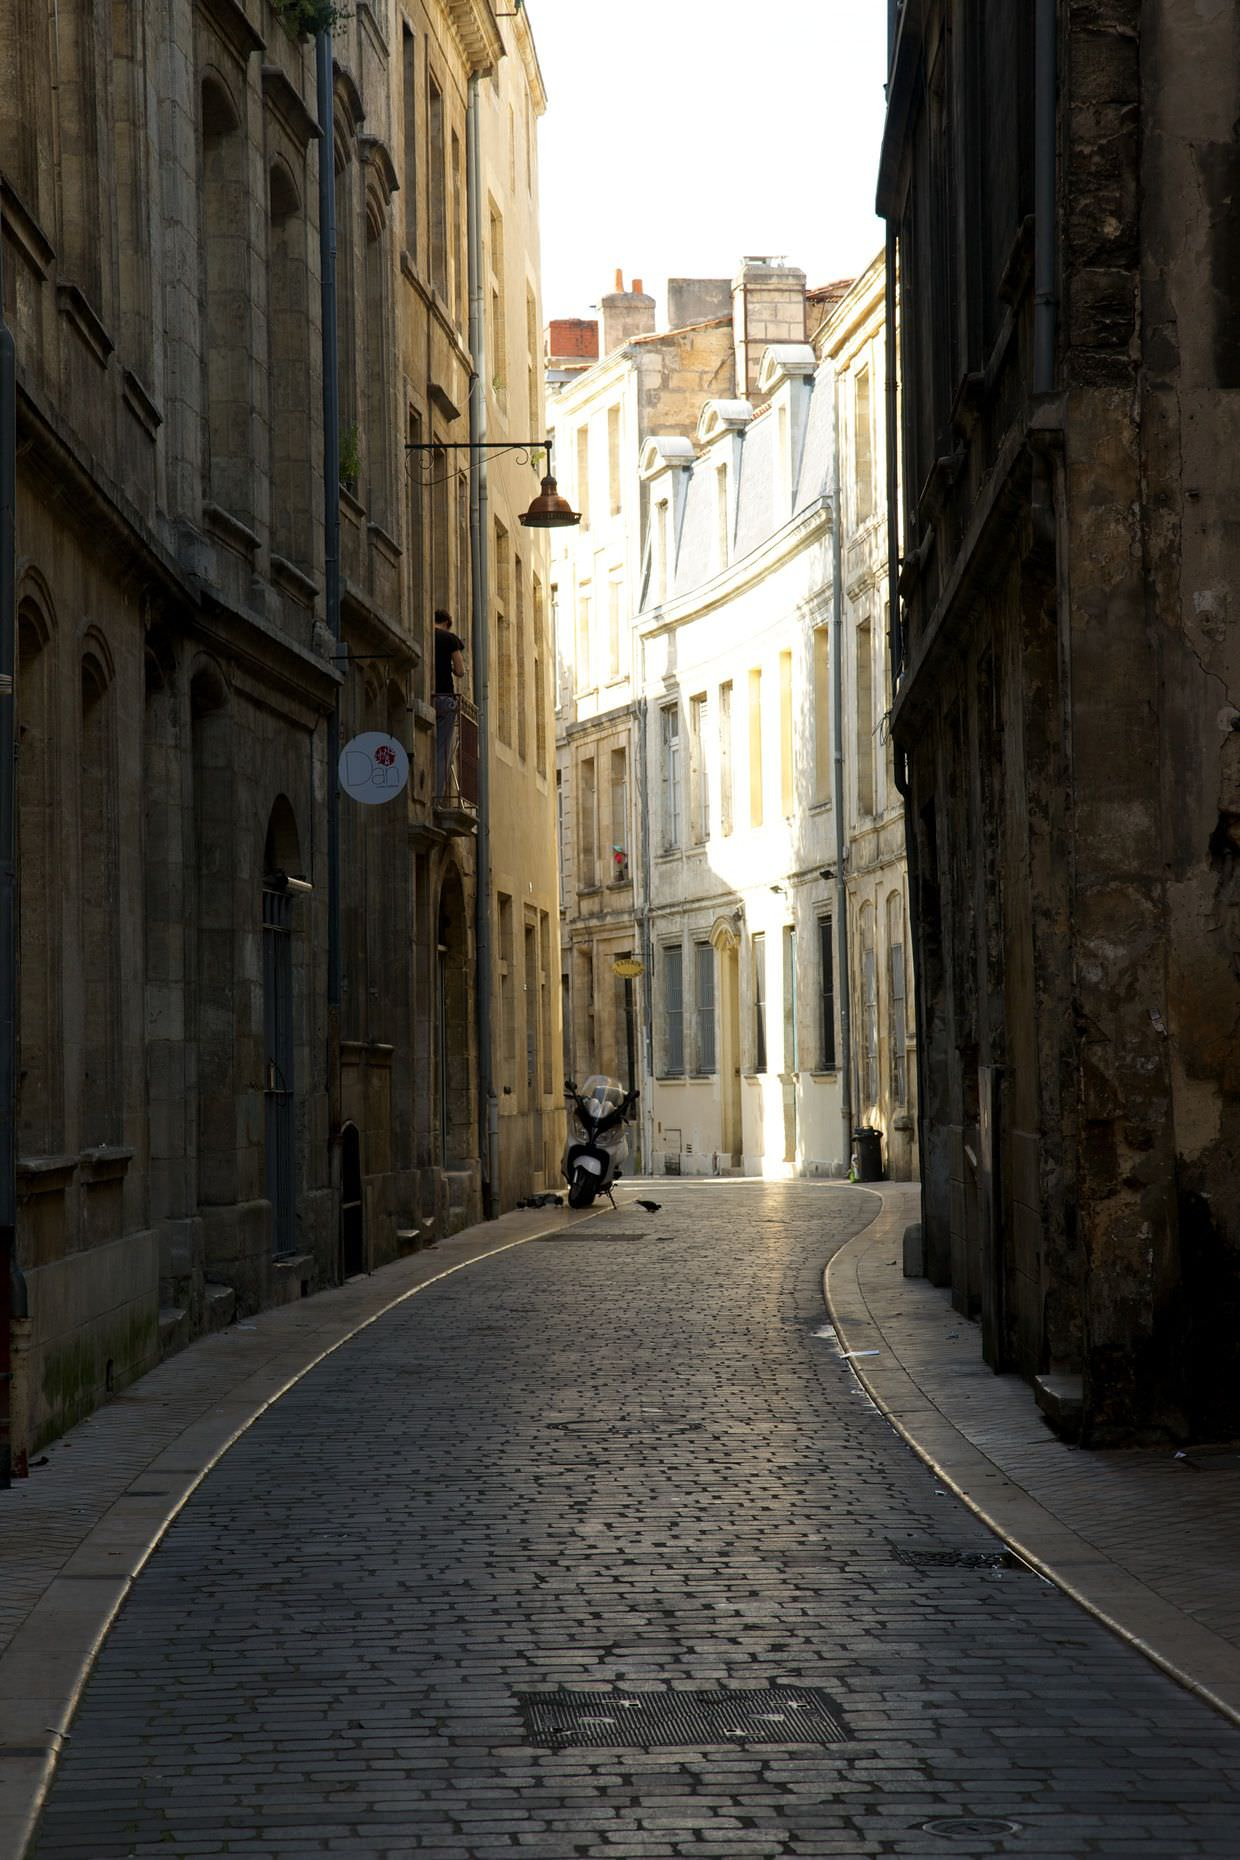 The old streets of Bordeaux